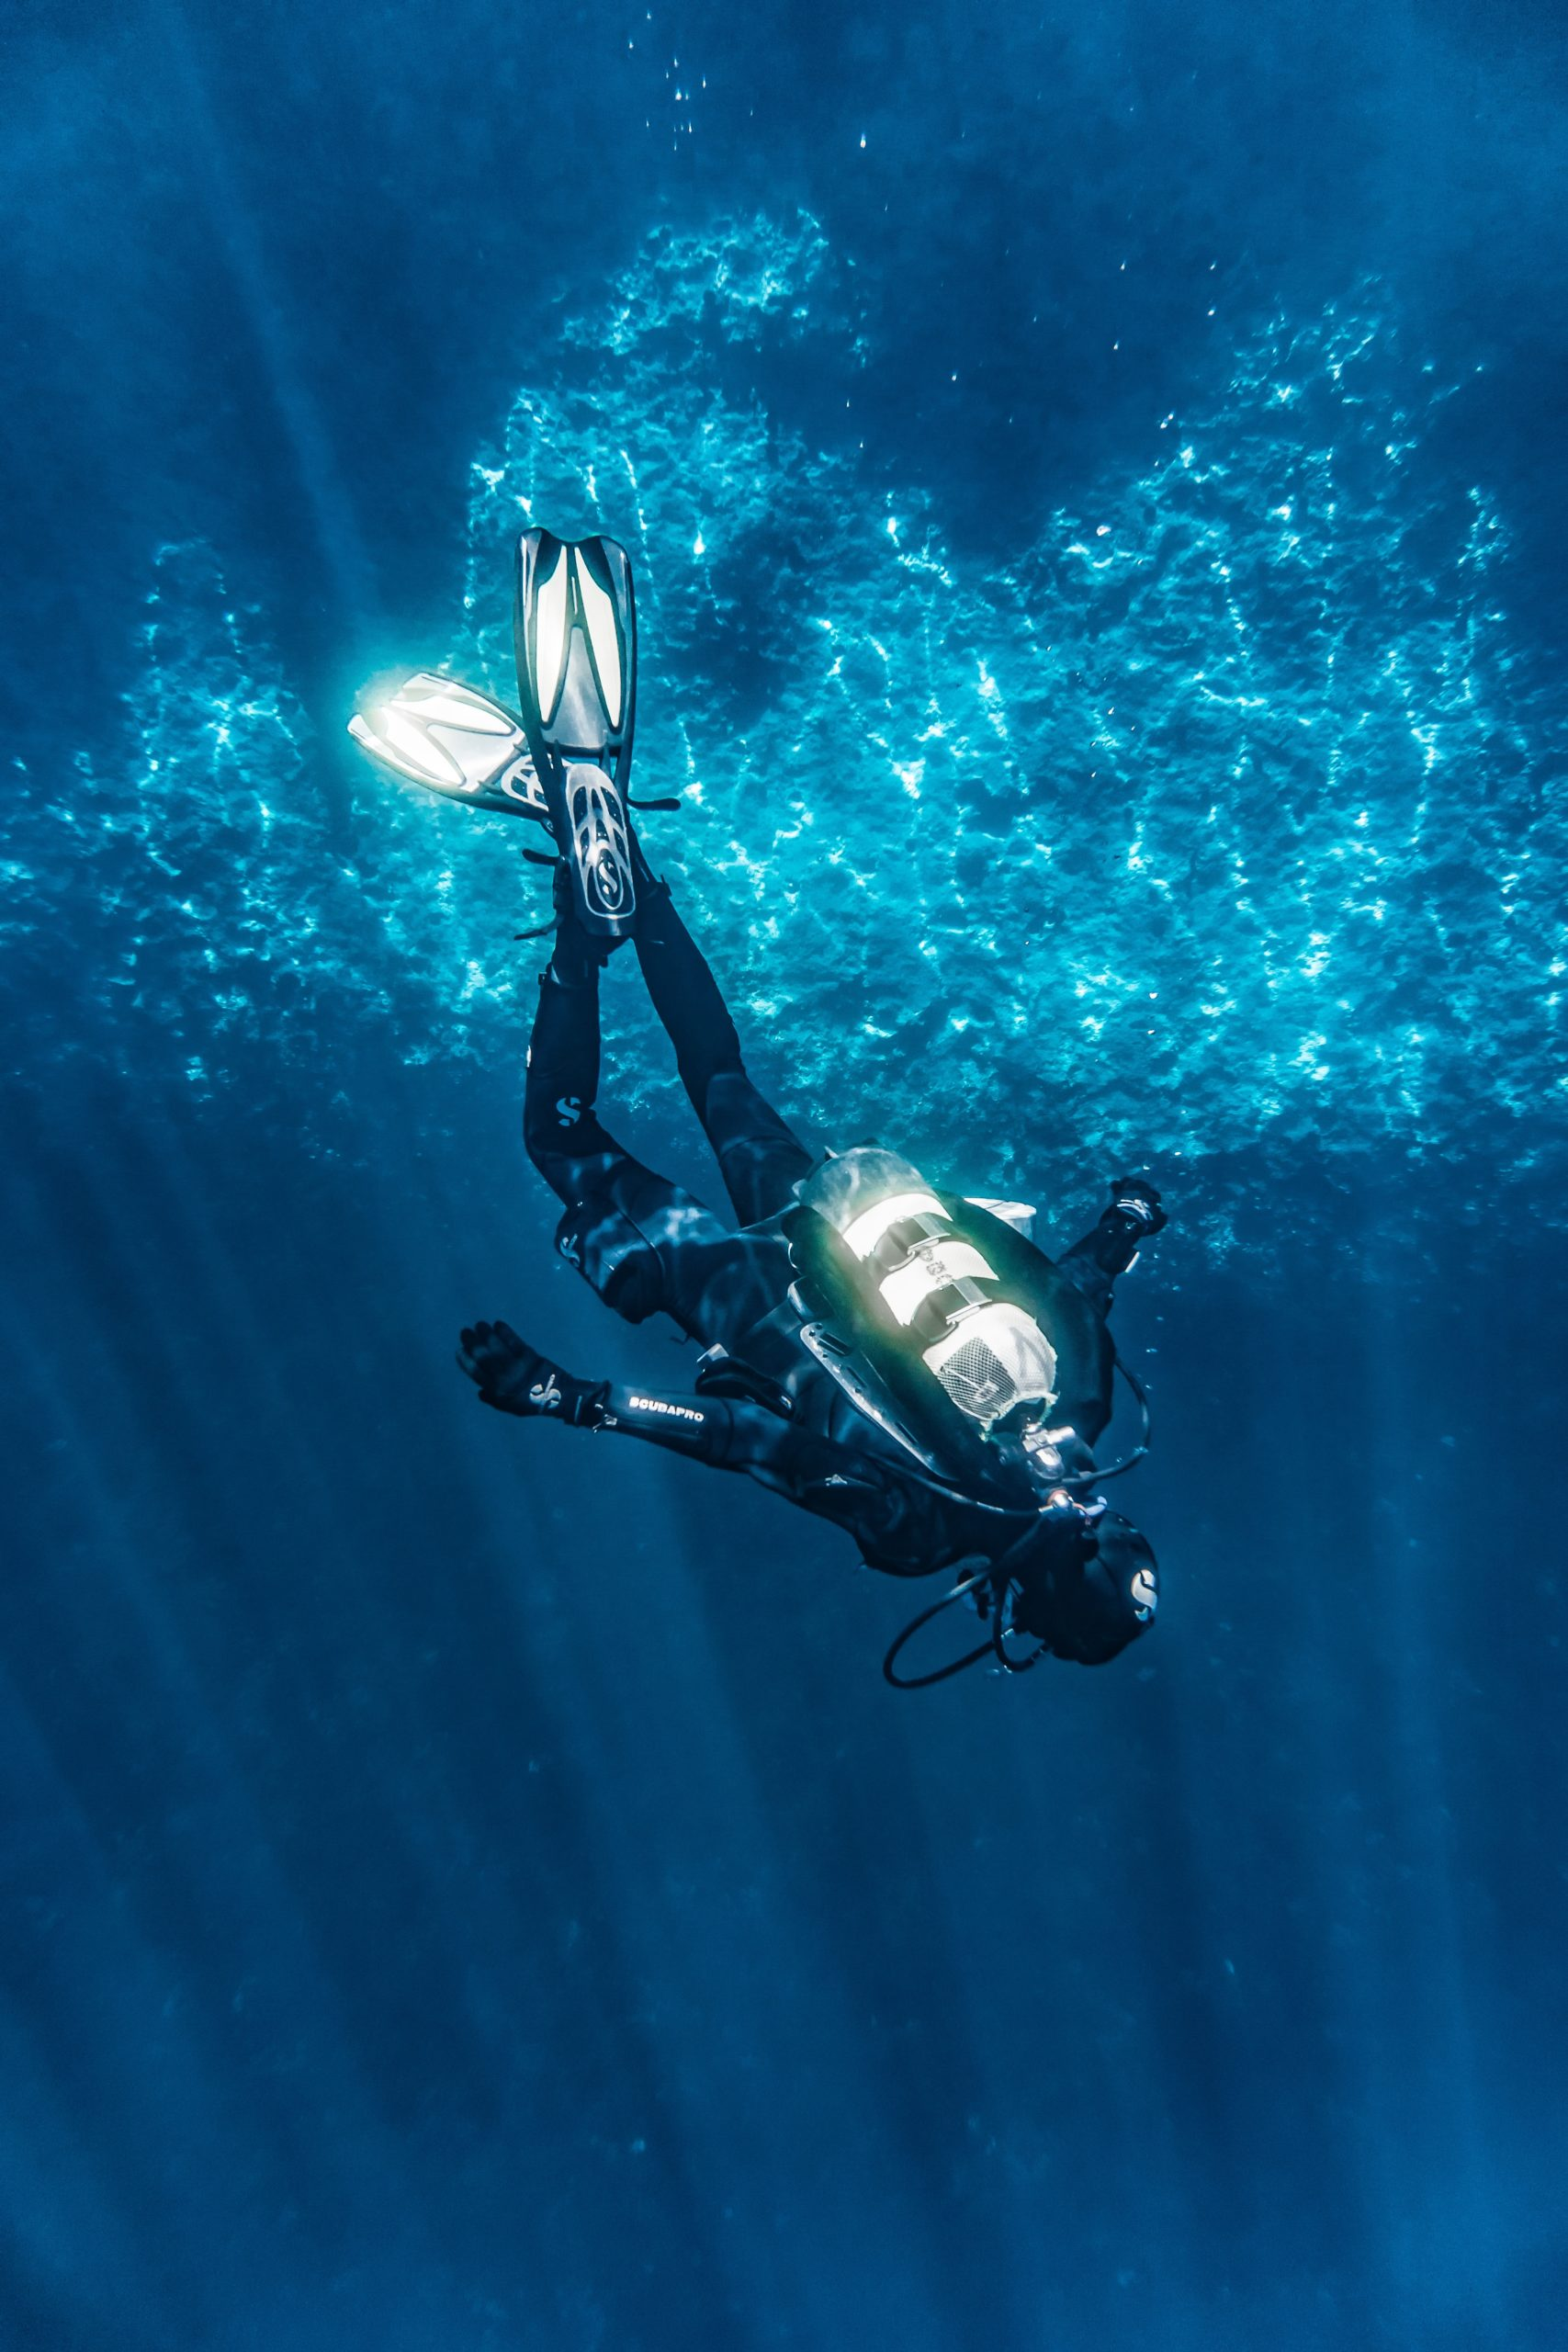 how do scuba divers go up and down safely? This diver is descending head first.